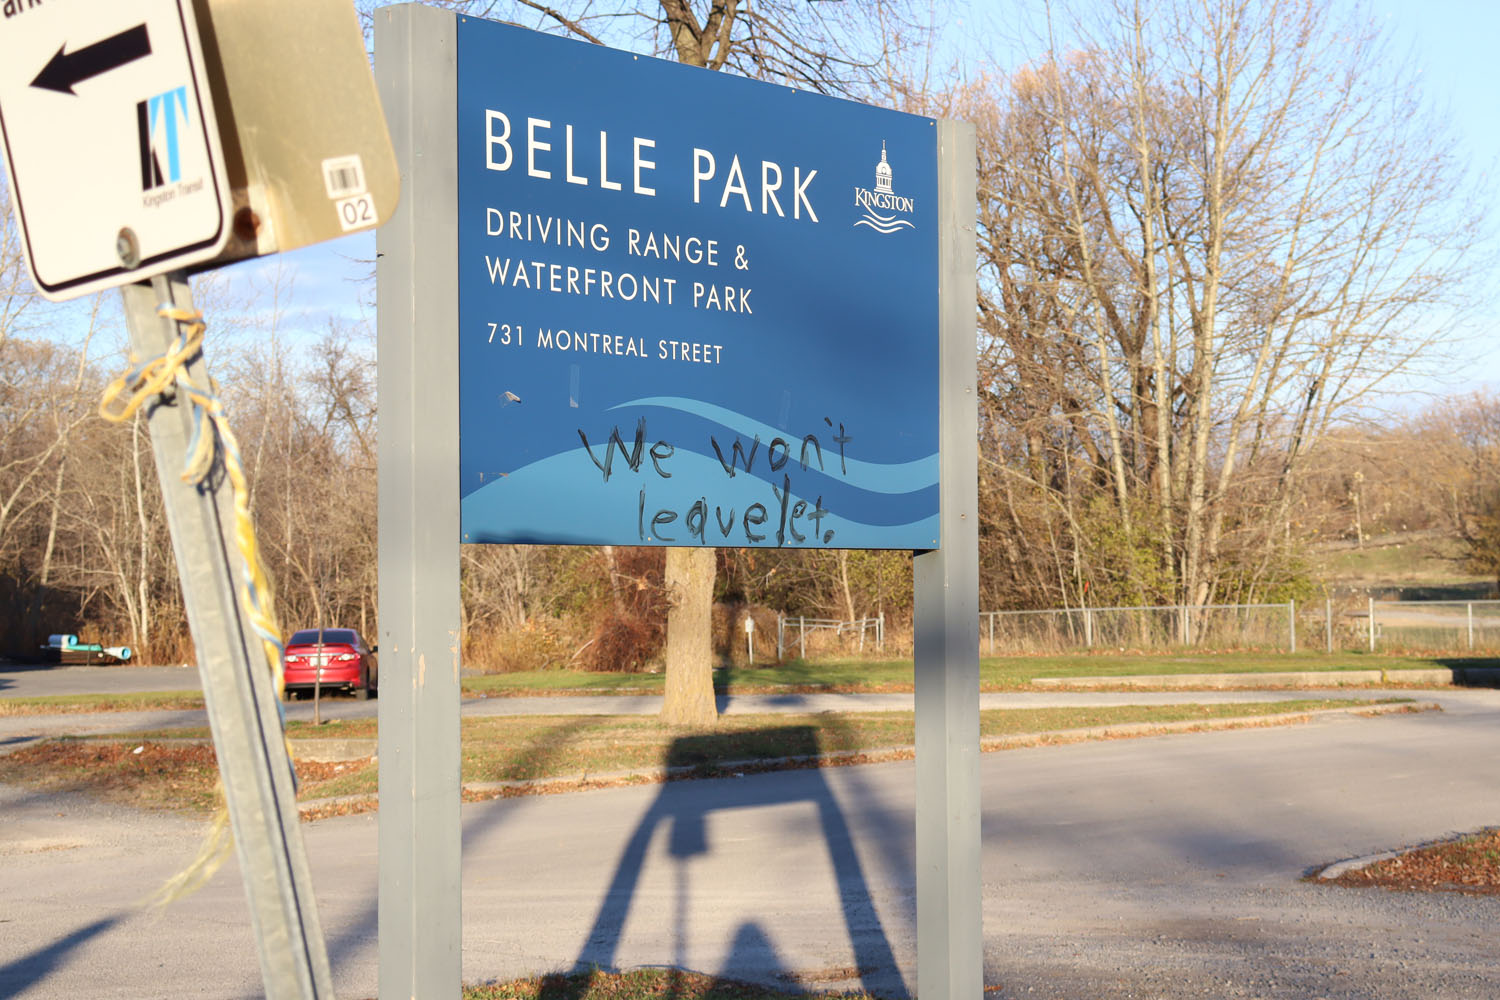 """Image of Belle Park where people experiencing homelessness lived in the summer. The words """"we won't leave yet"""" has been written on the sign."""